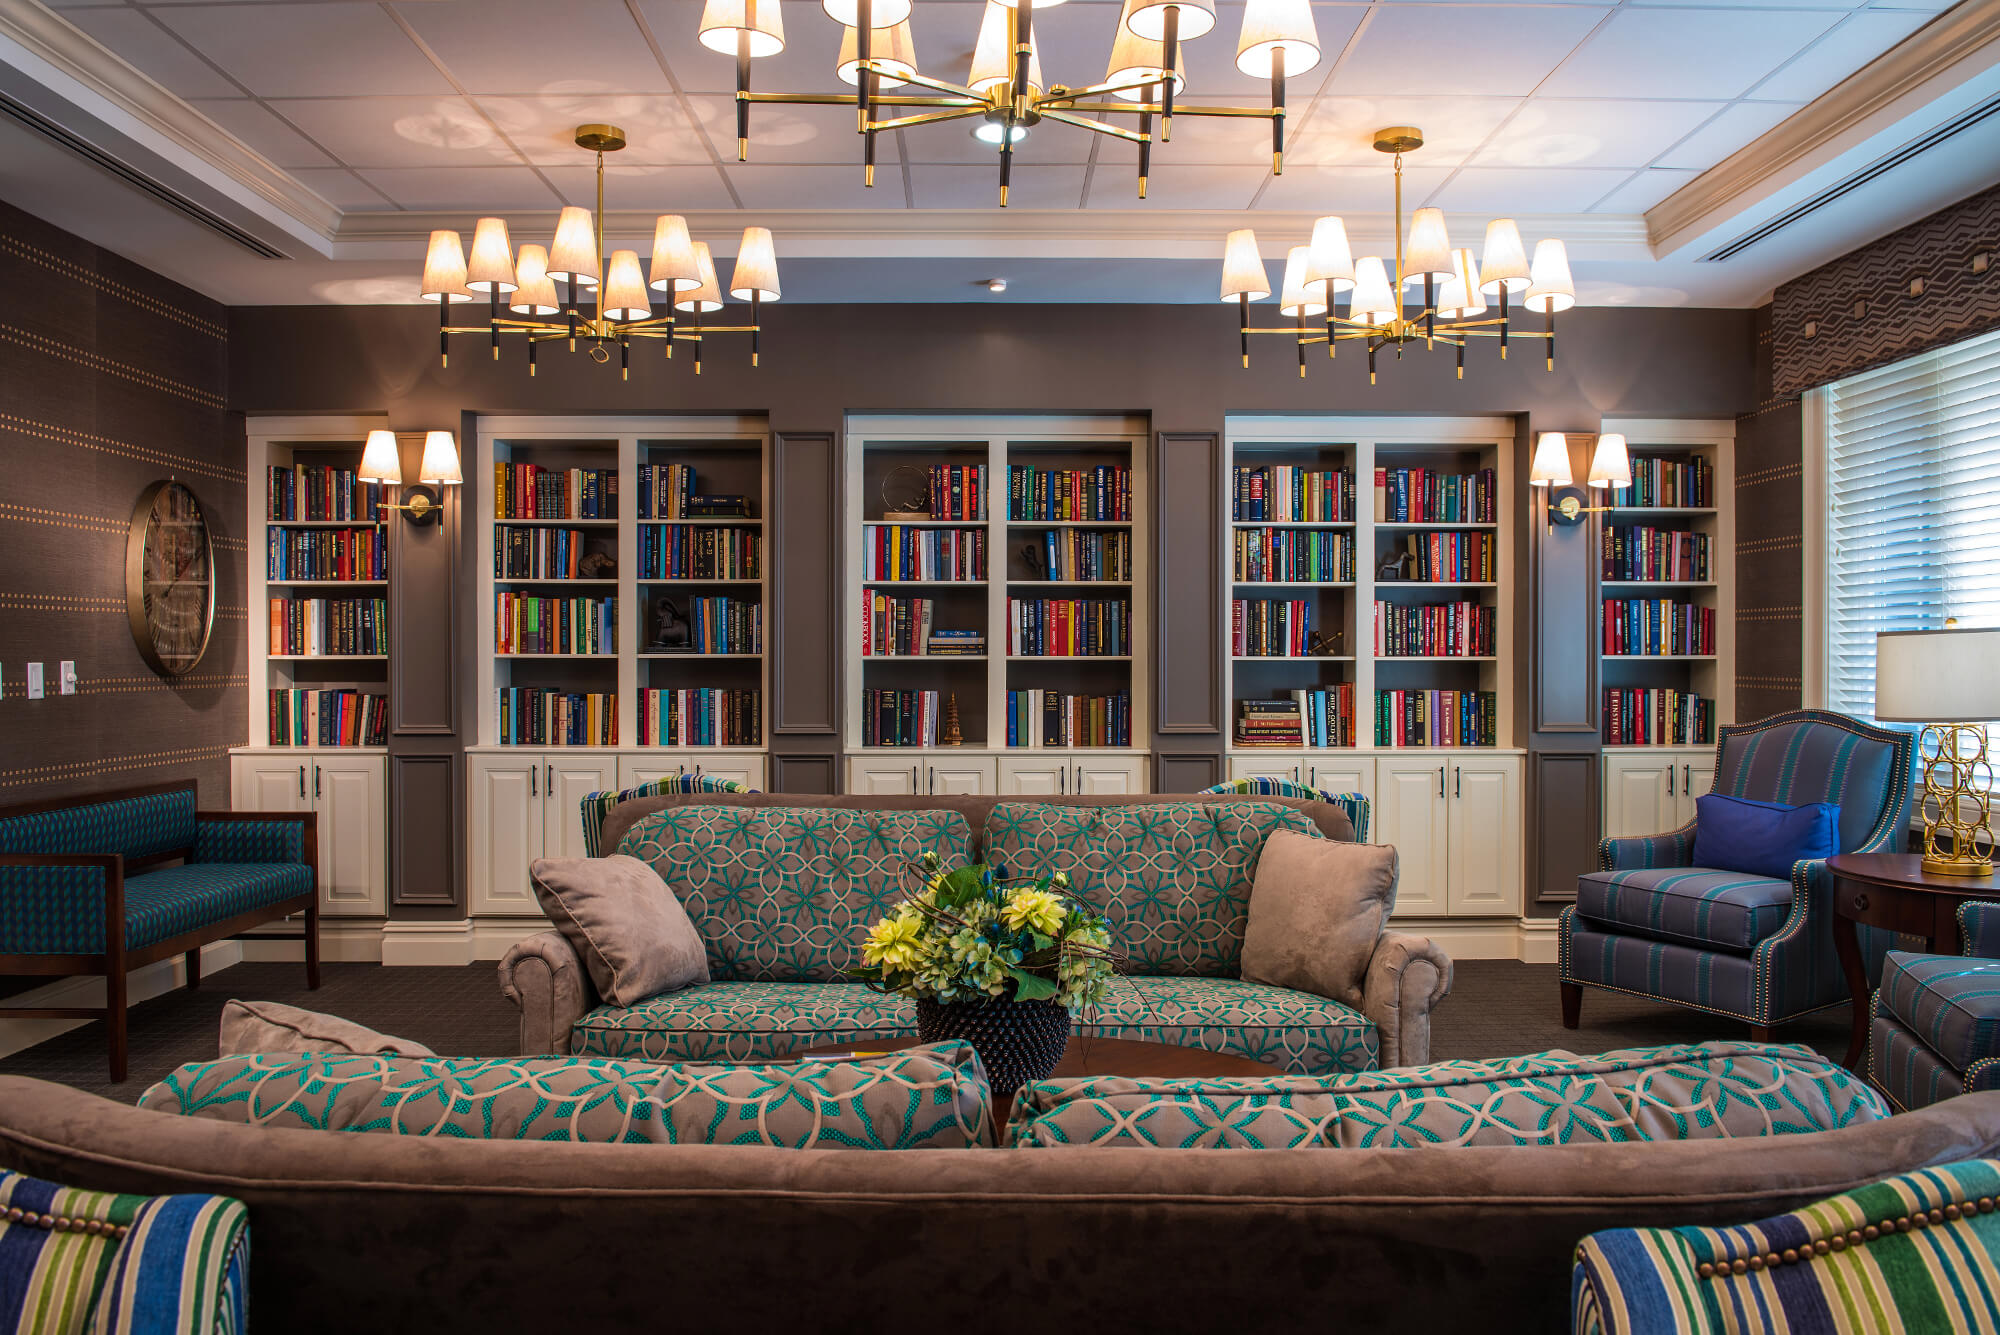 Residents can enjoy quite time in The ambassador library